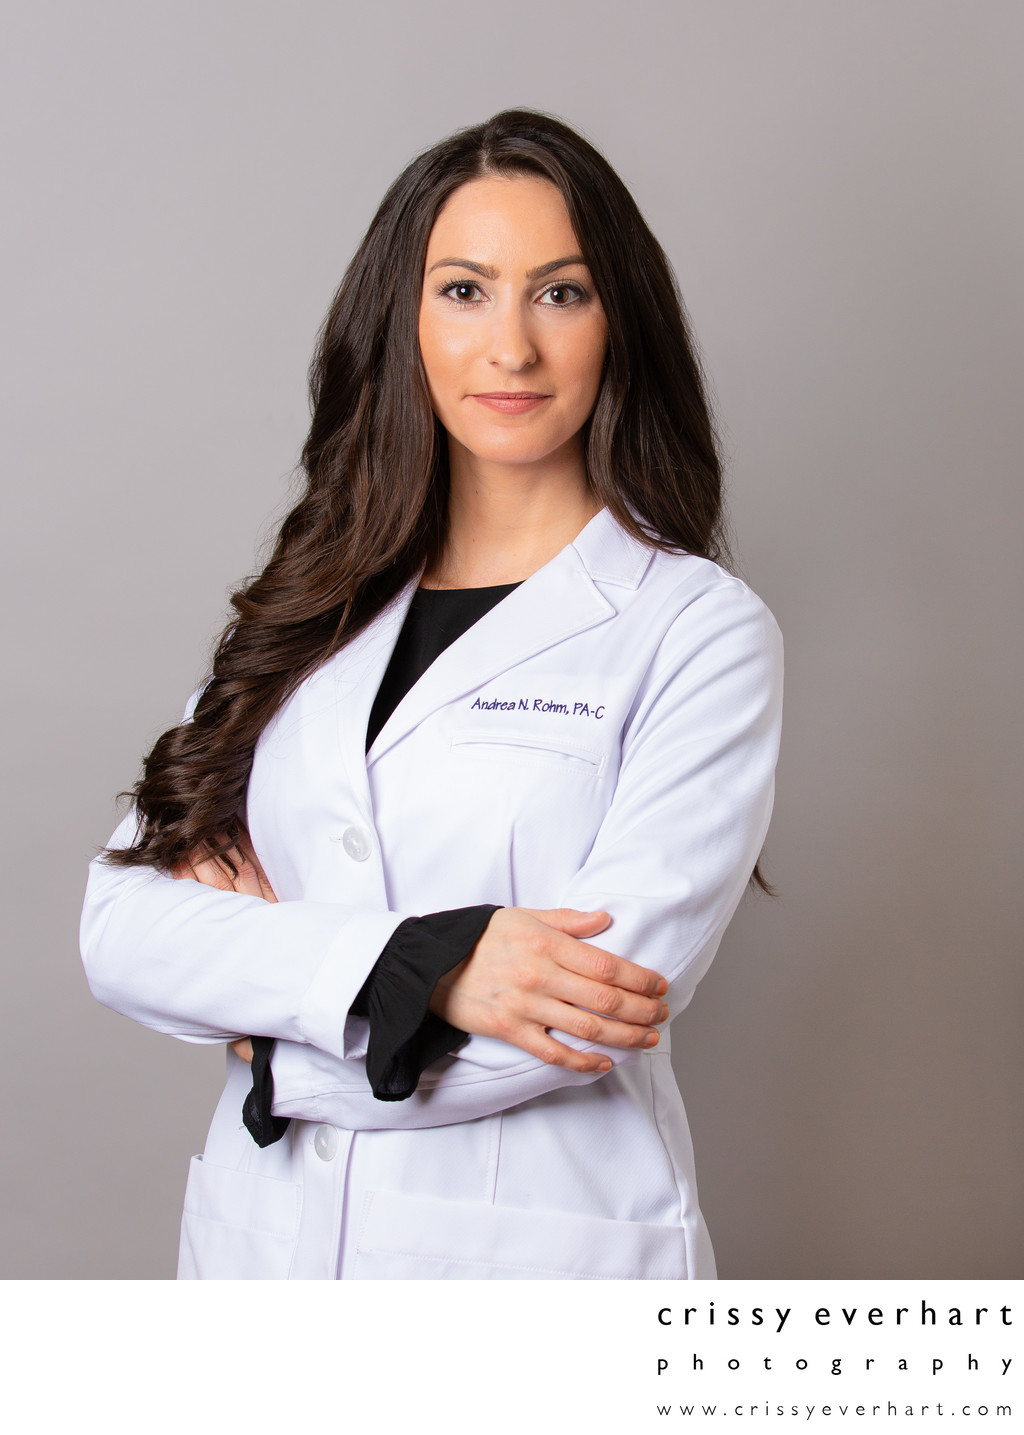 Paoli Hospital Headshot Photography - Medical Doctor